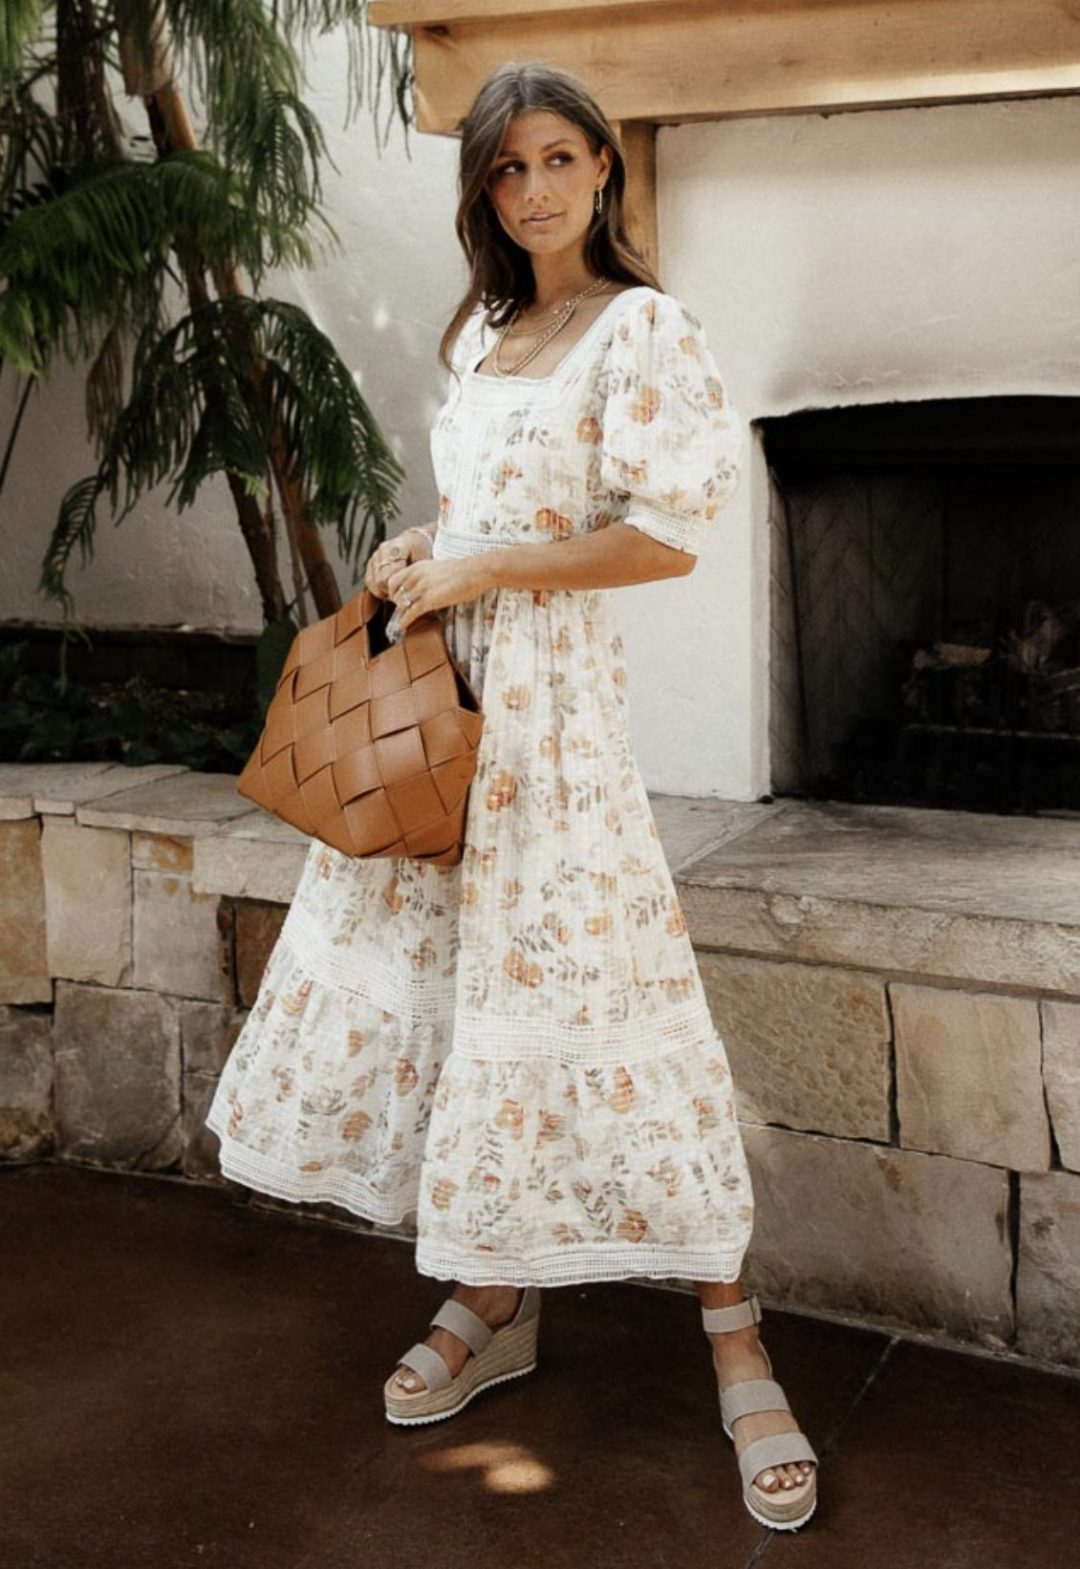 10 Best Stores Like Vici Collection For Affordable Romantic Clothing